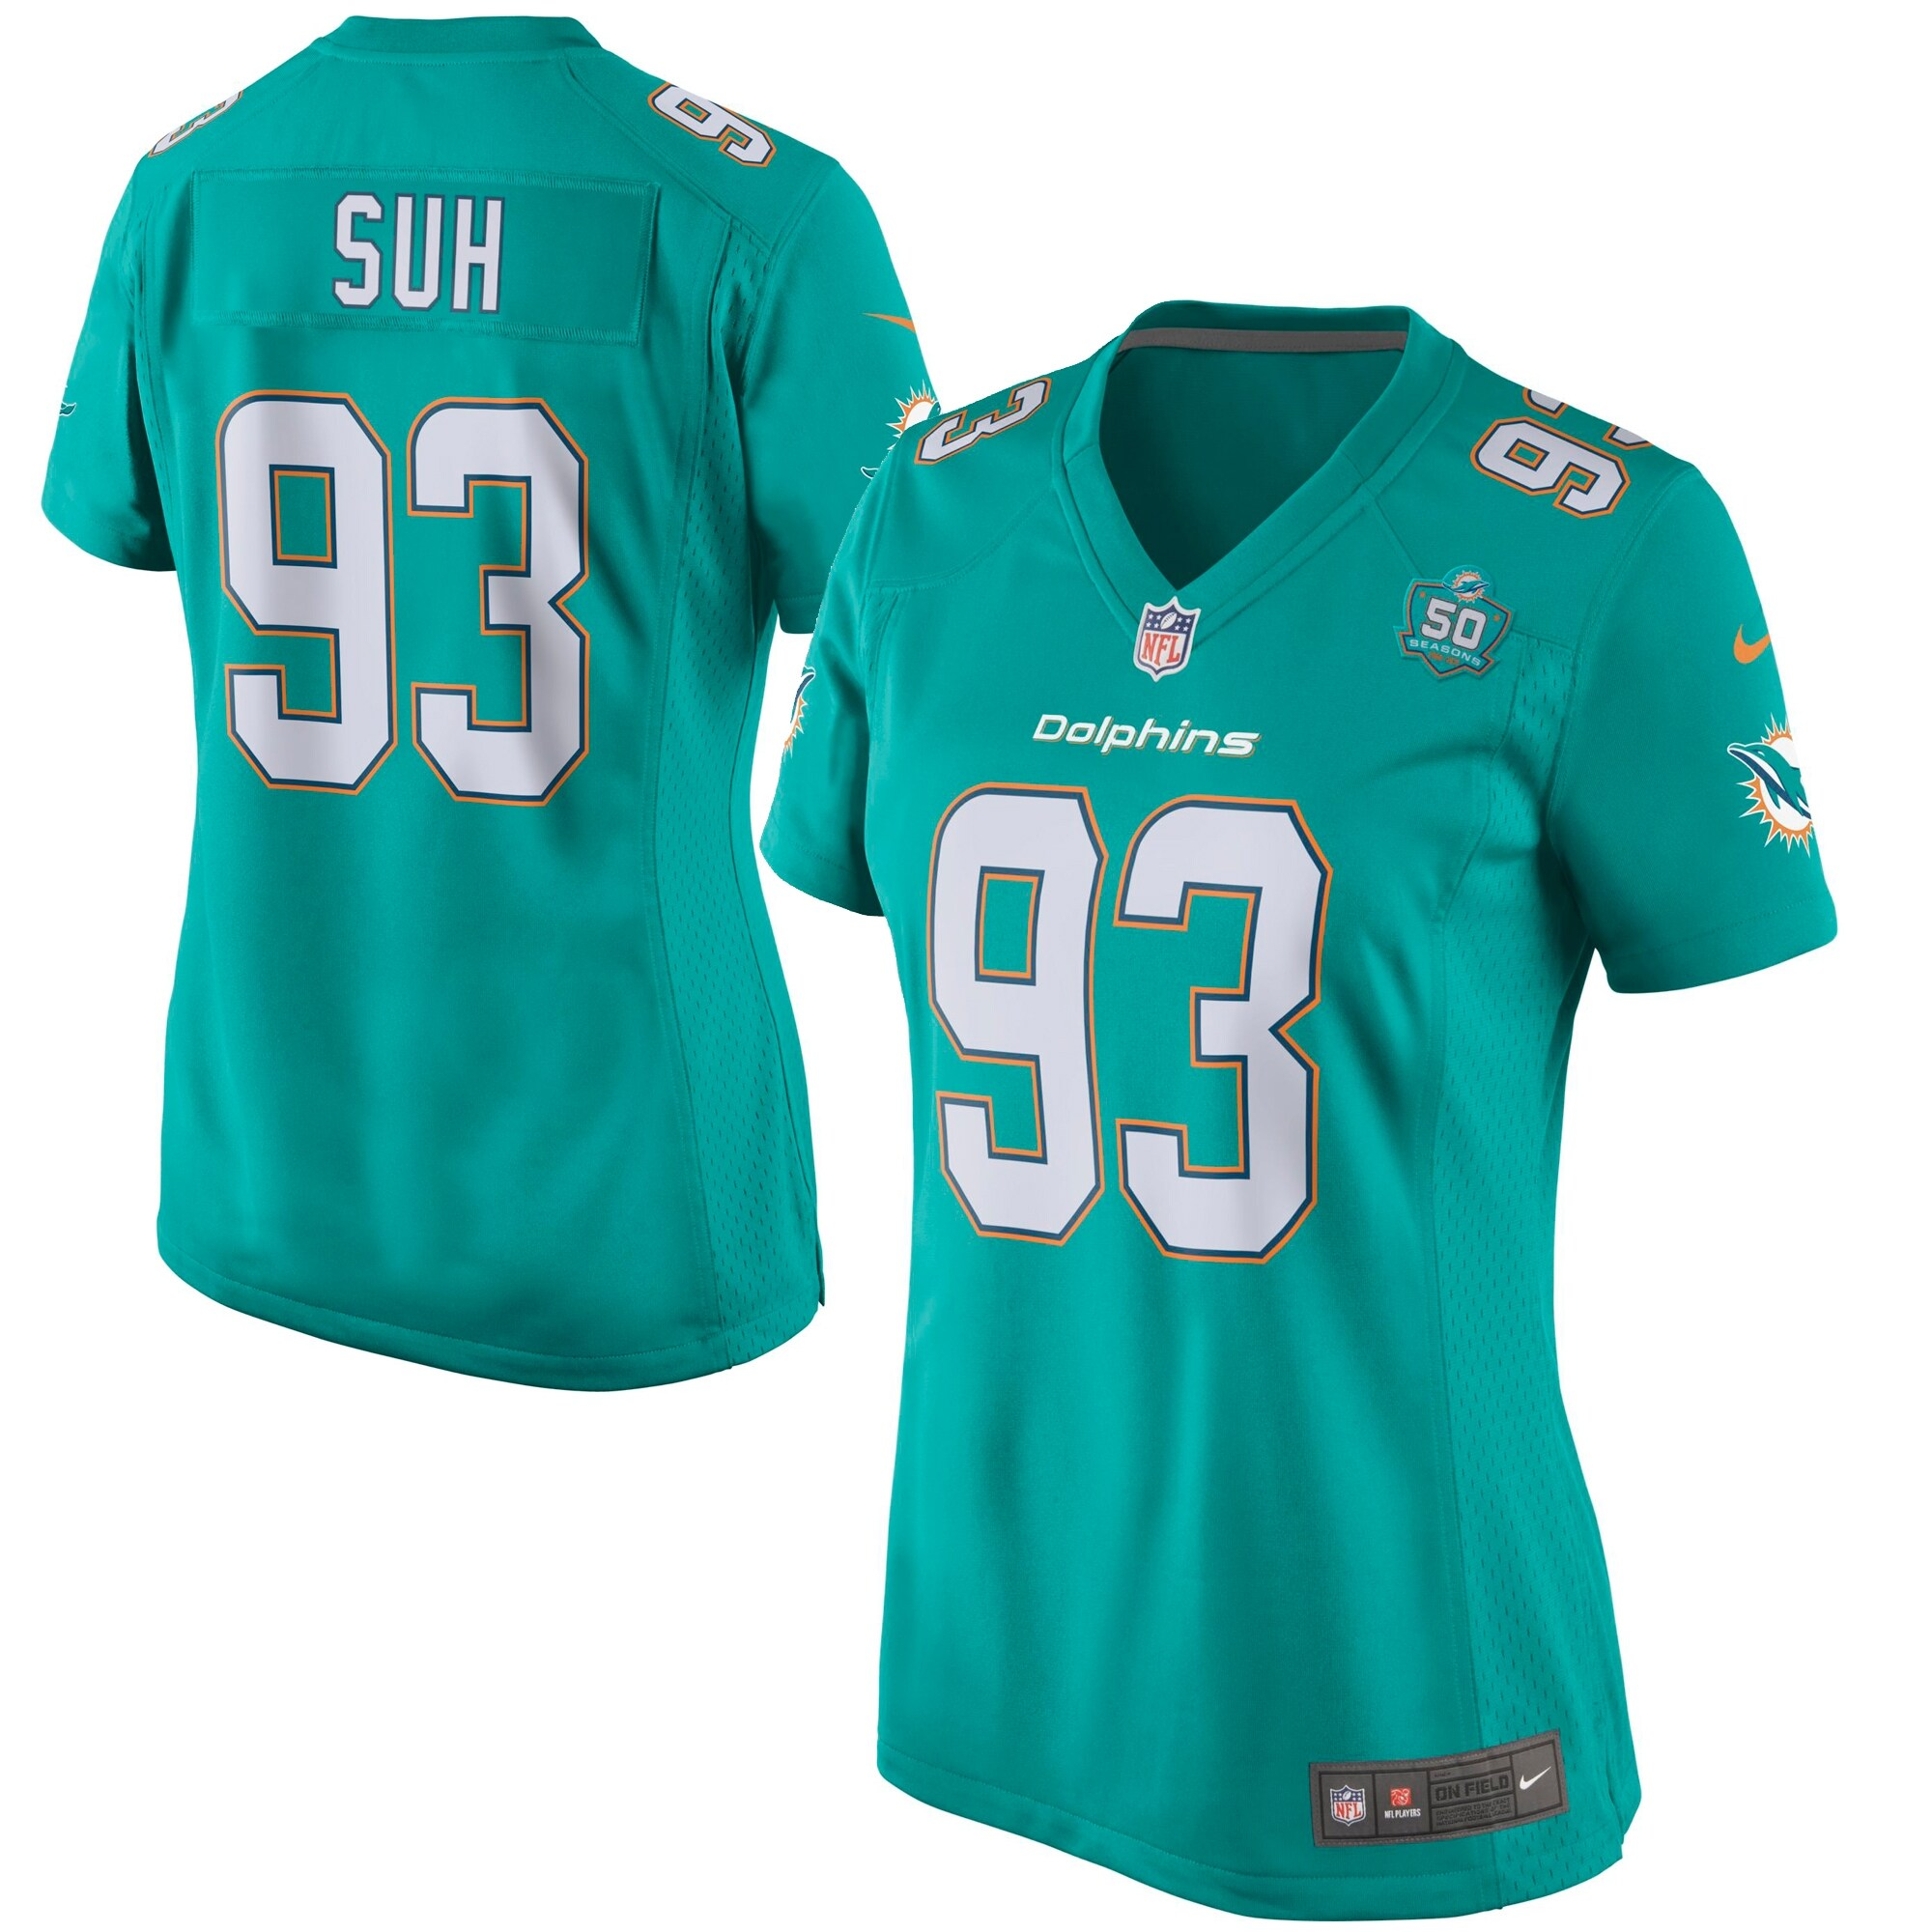 Ndamukong Suh Miami Dolphins Nike Women's Team Game 2015 NFL Patch Jersey - Aqua